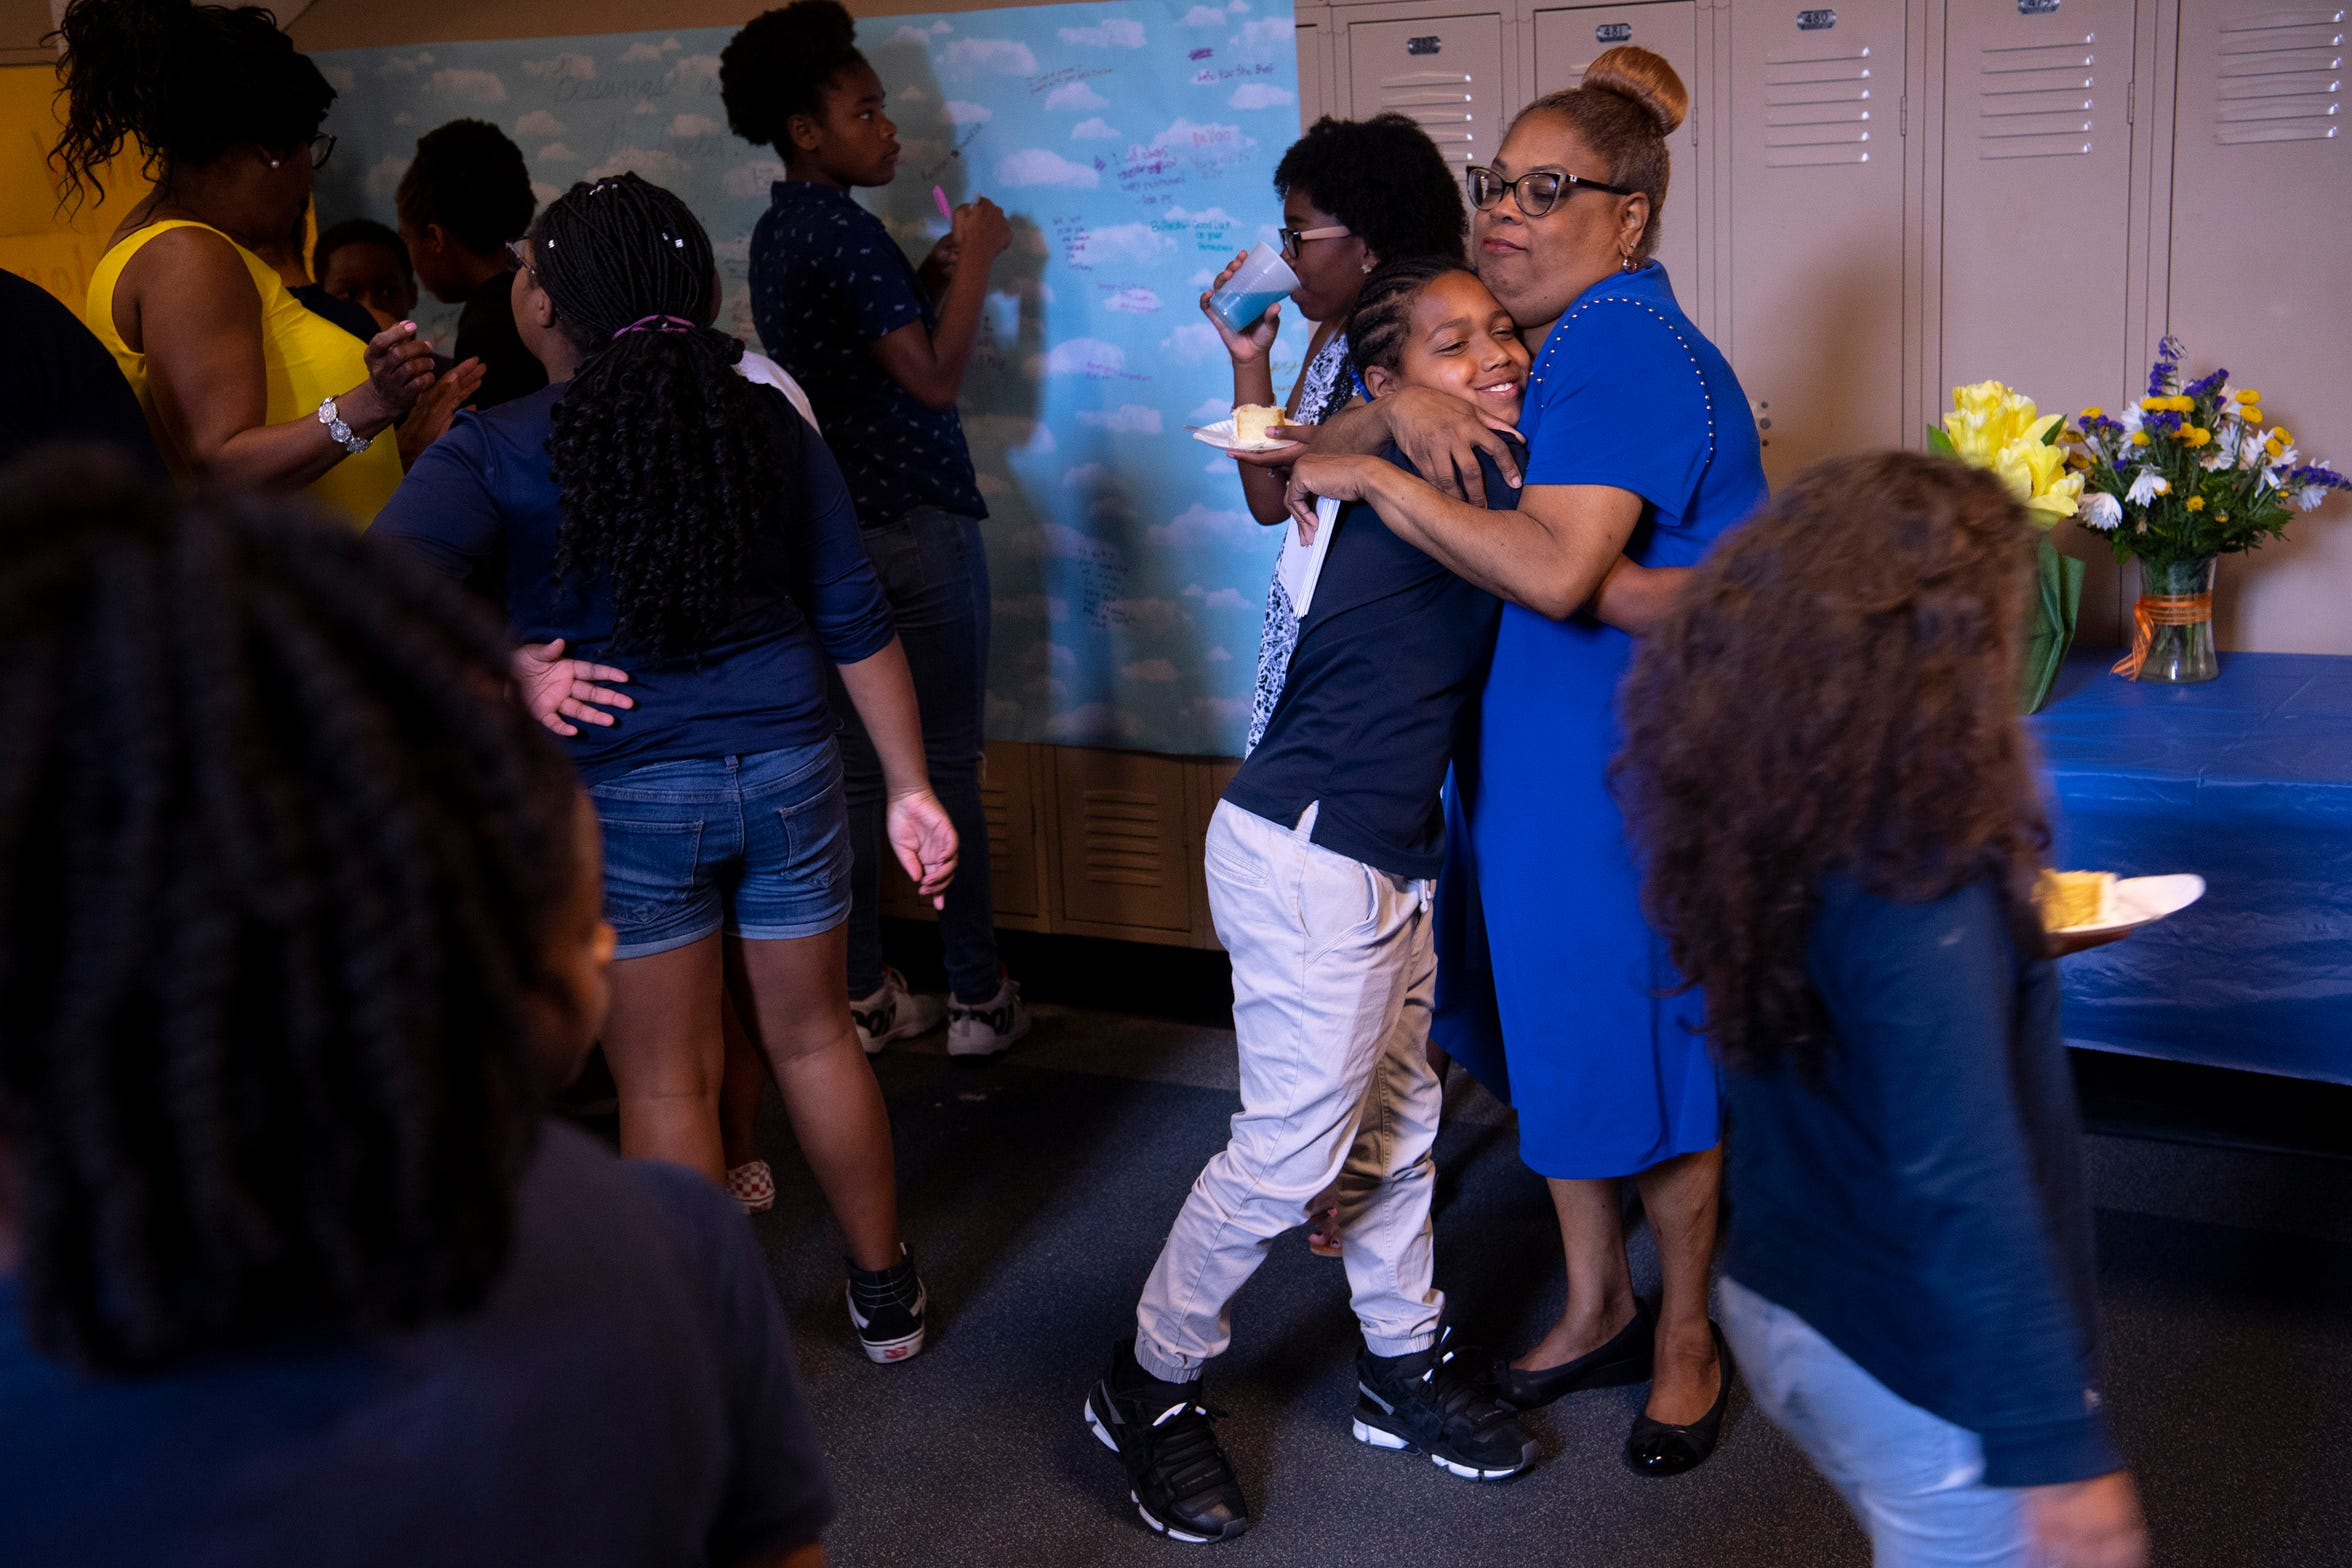 Kingston Chambers receives a hug from Pam Decker at her Joshua Academy retirement party Friday, May 24, 2019. Cake and blue punch were served to the students as they semi-orderly arrived with their classes to say goodbye to their past principal on the last day of school.